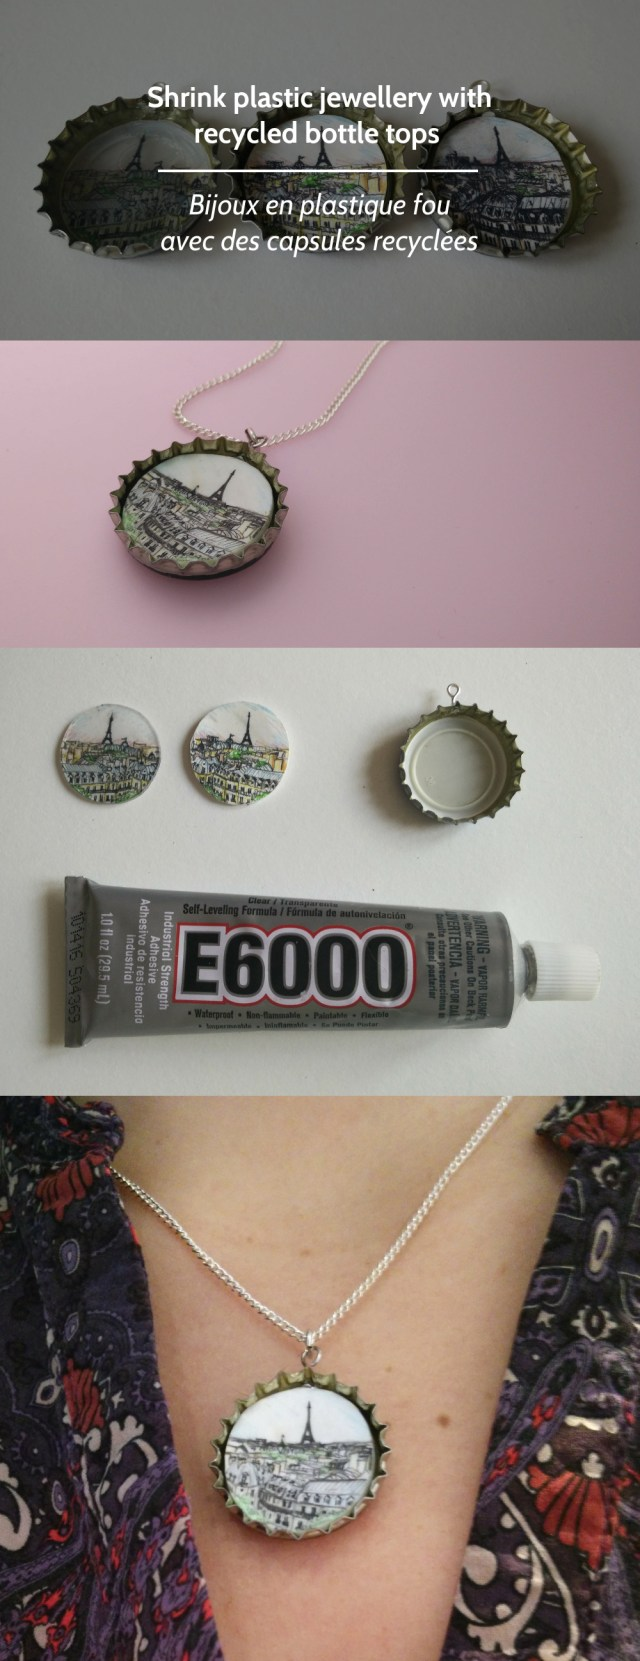 Shrink plastic jewellery with recycled bottle tops